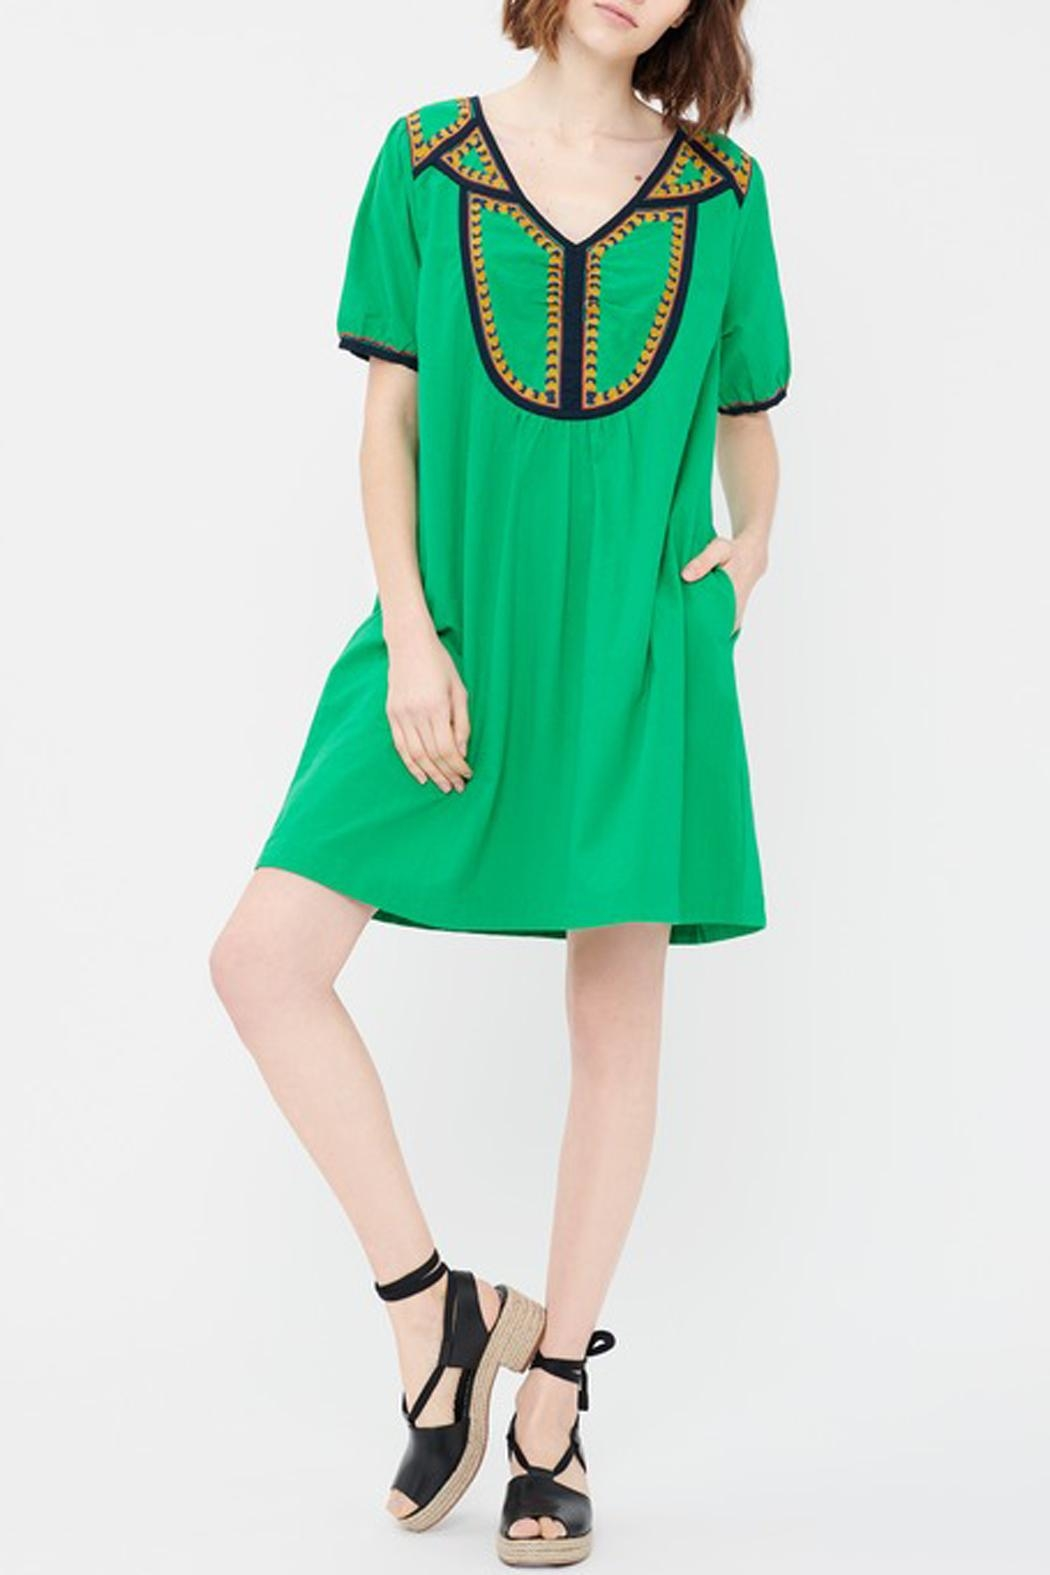 Acoté Green Prairie Dress - Main Image